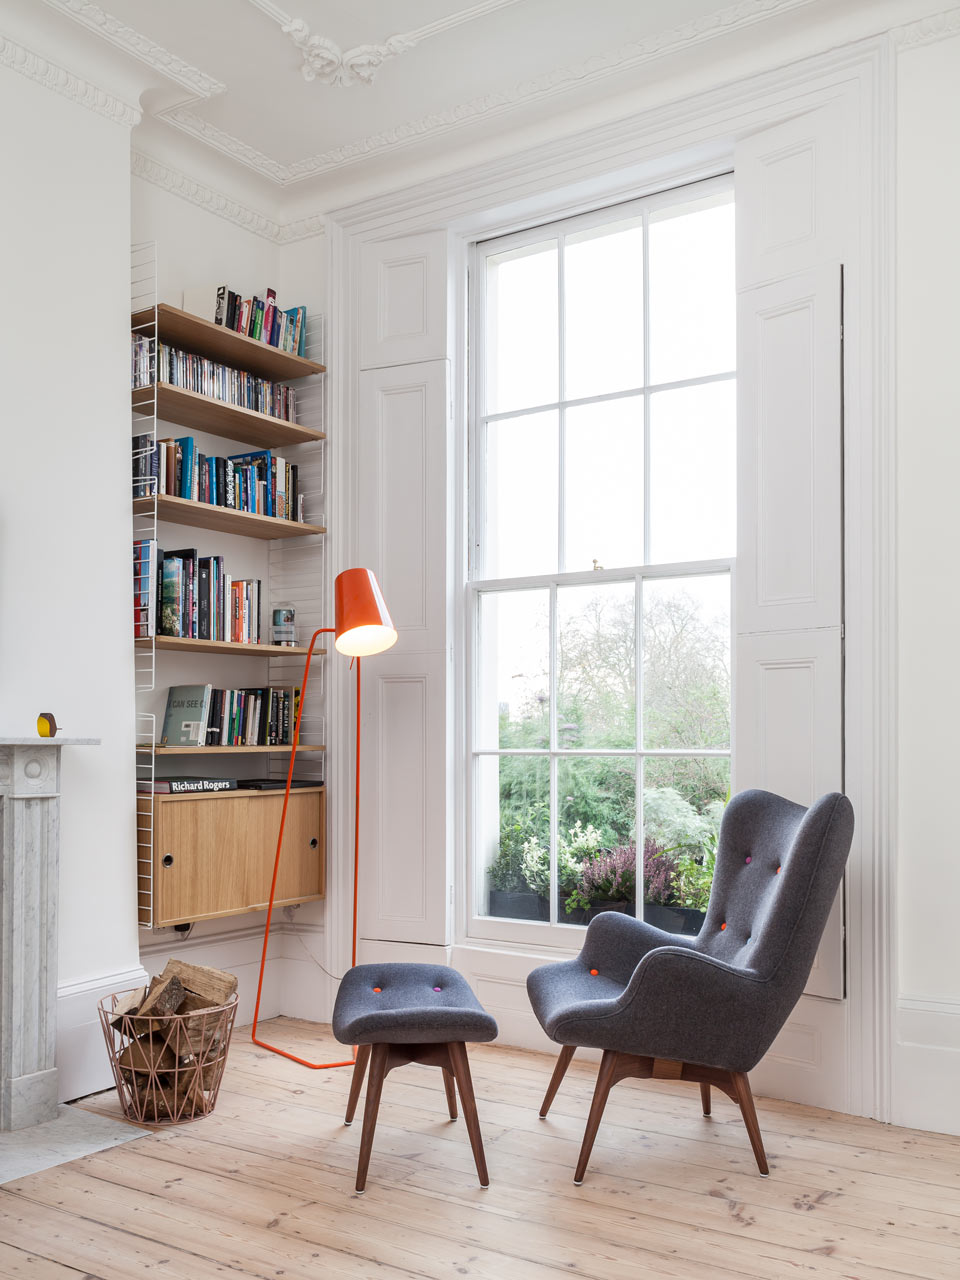 10 essentials for a cozy reading nook book storage solutioingenieria Image collections